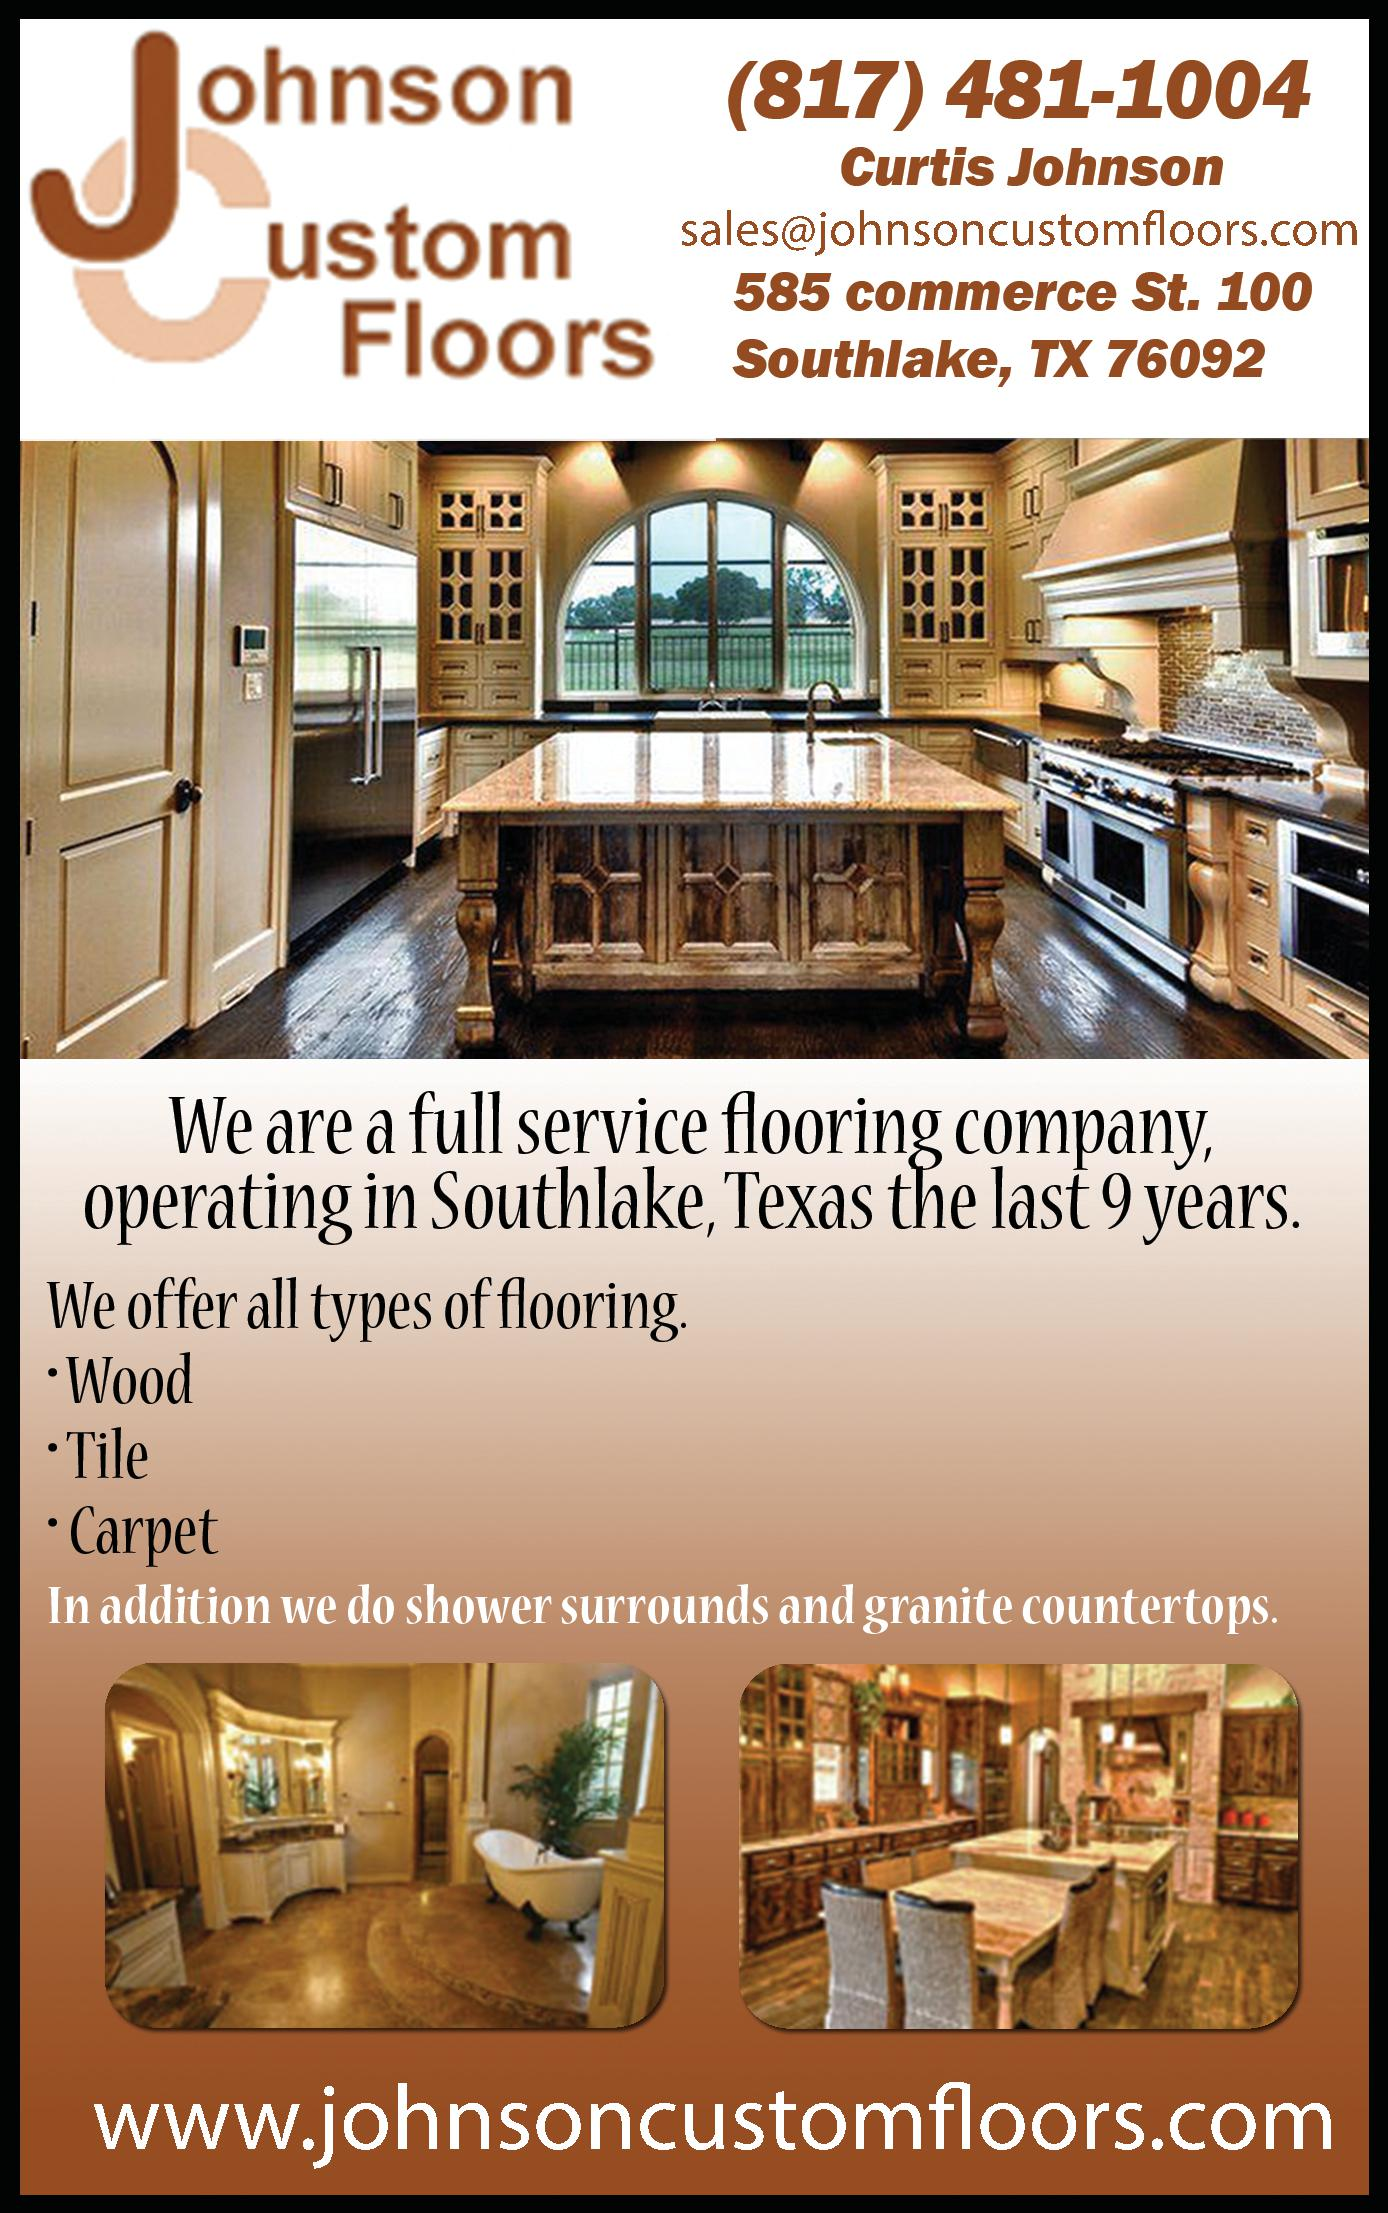 Johnson Custom Floors